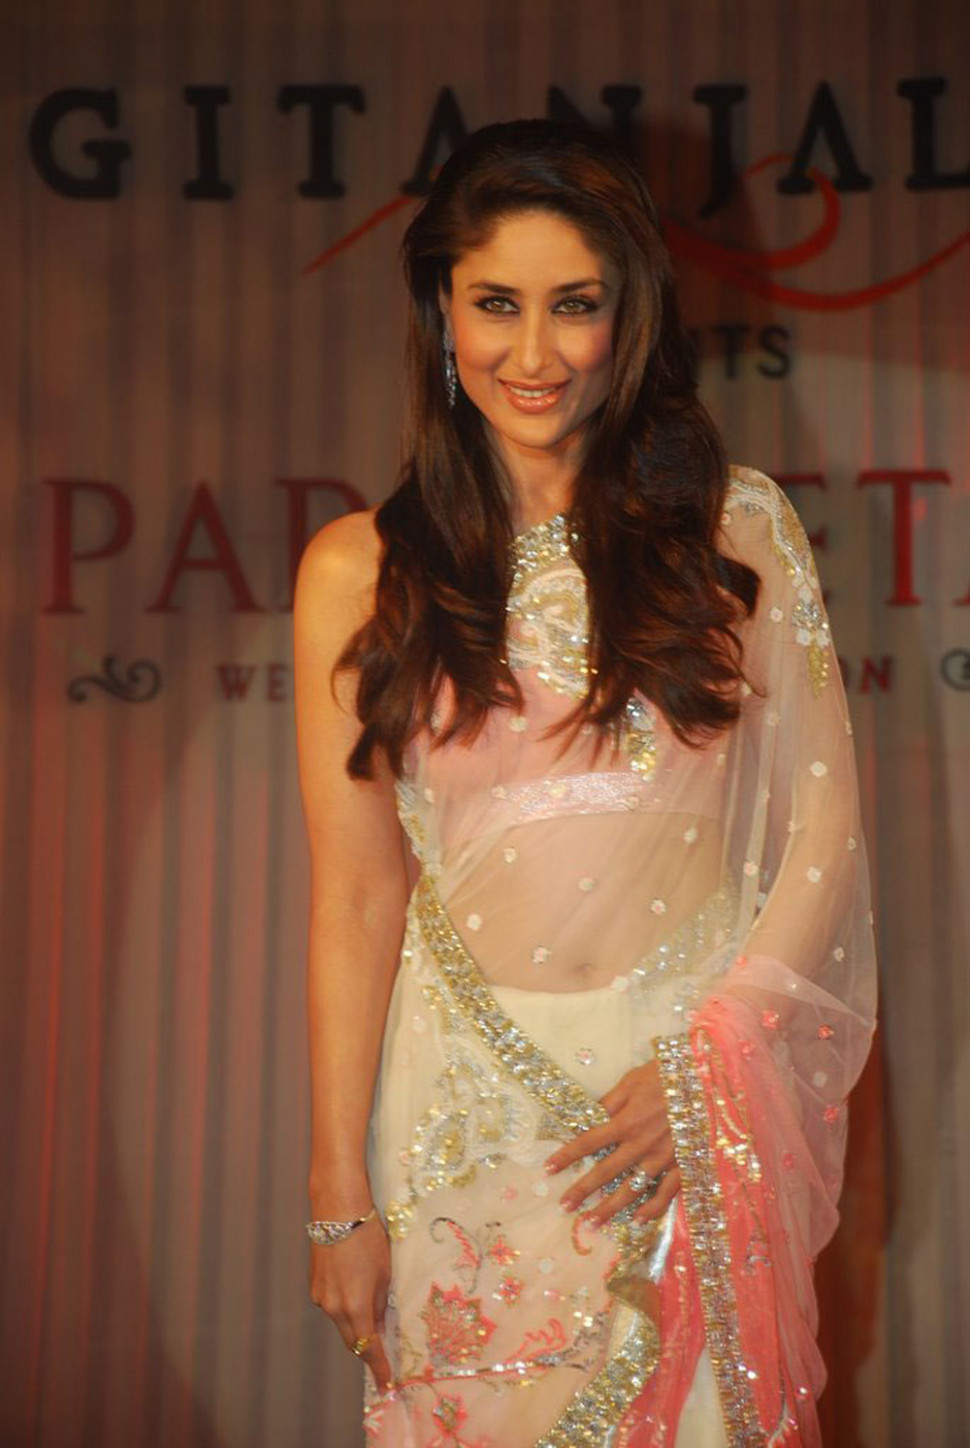 Kareena Kapoor - See Thru Saree  HQ Pics n Galleries